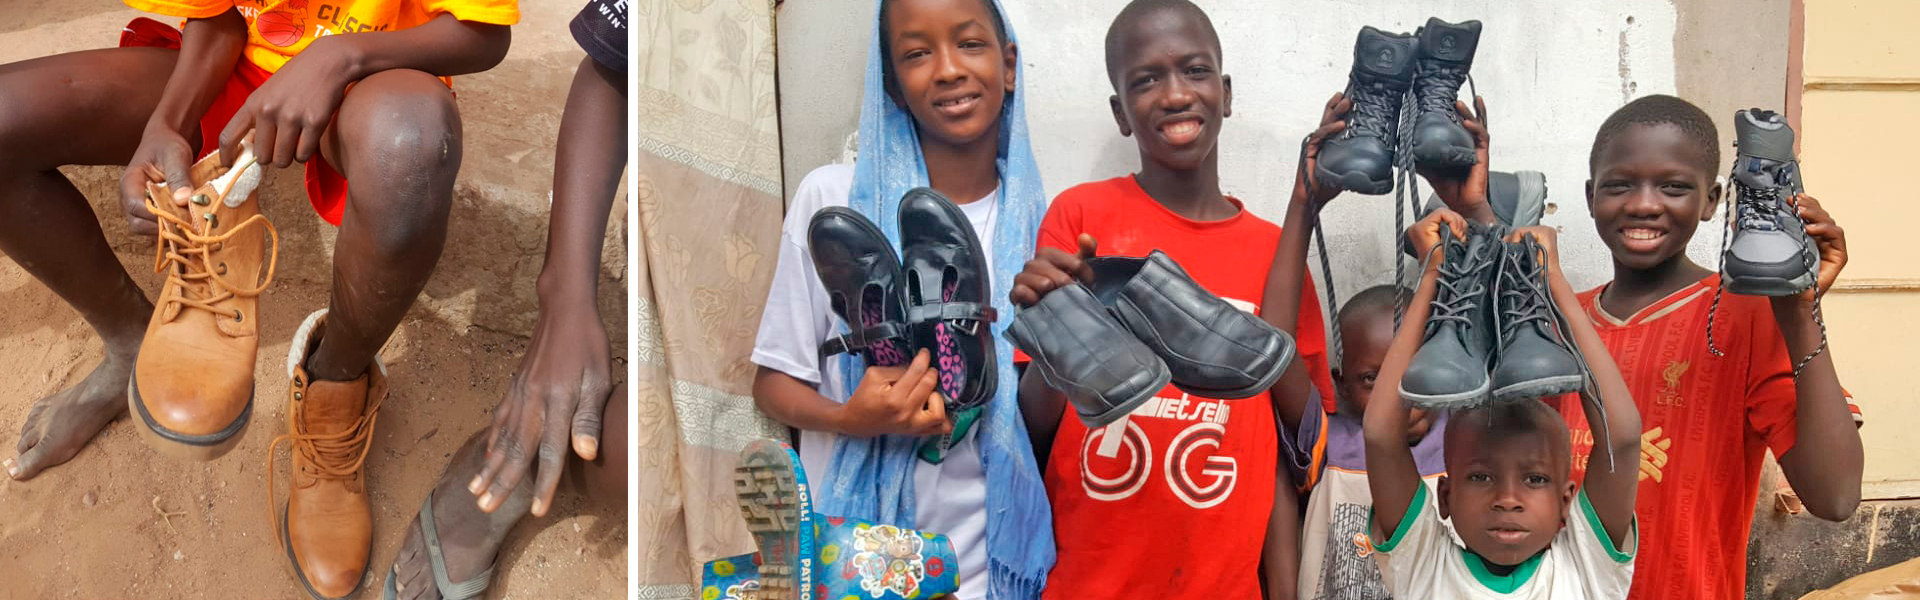 The Gambia Shoe Gallery 1